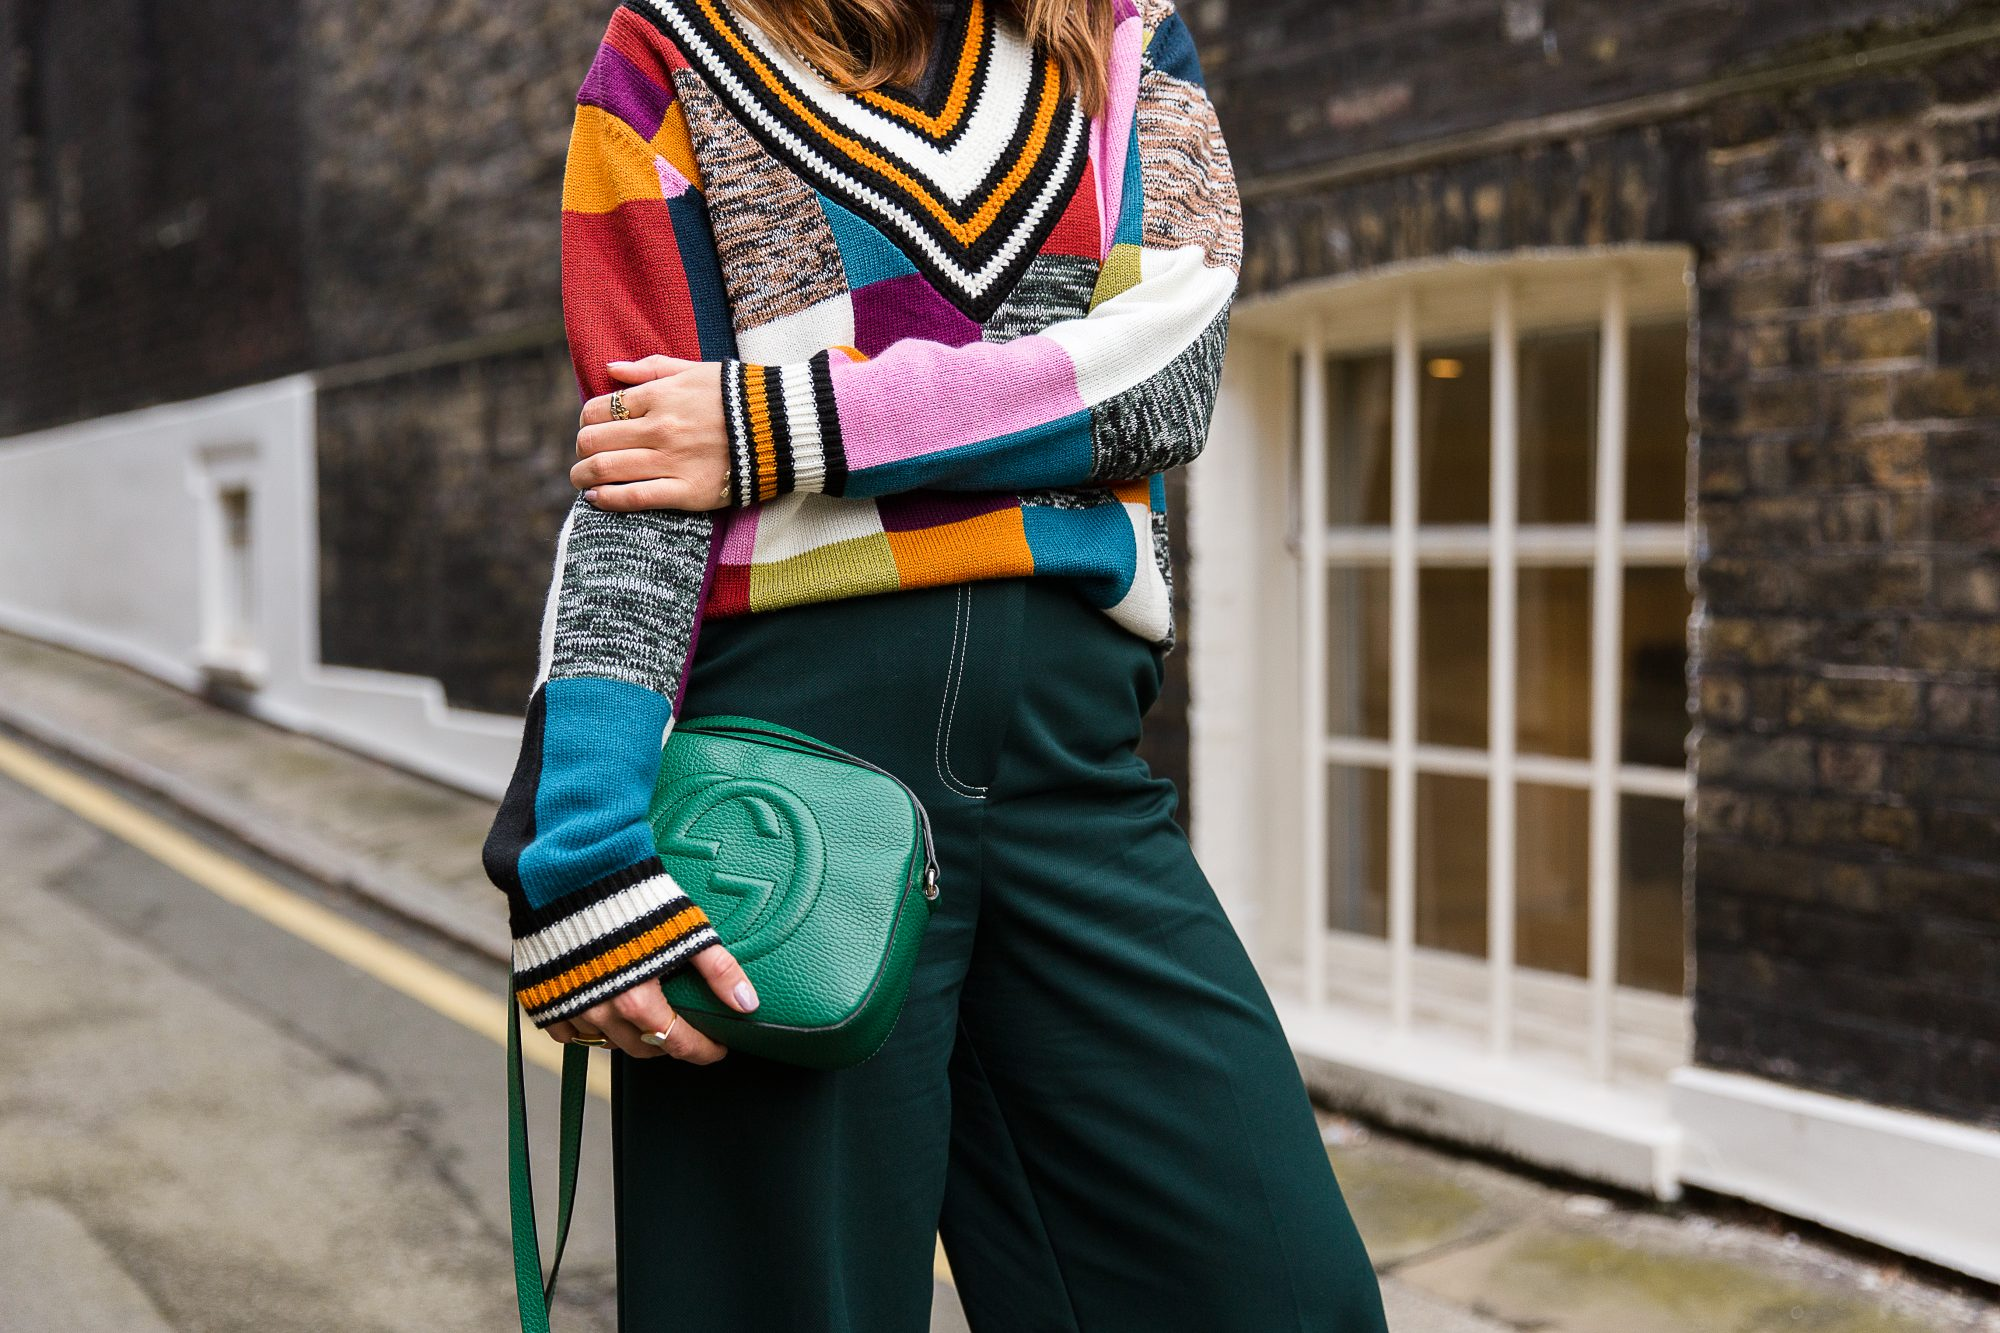 MEGAN ELLABY HOW TO INJECT COLOUR INTO YOUR WARDROBE FOR WINTER